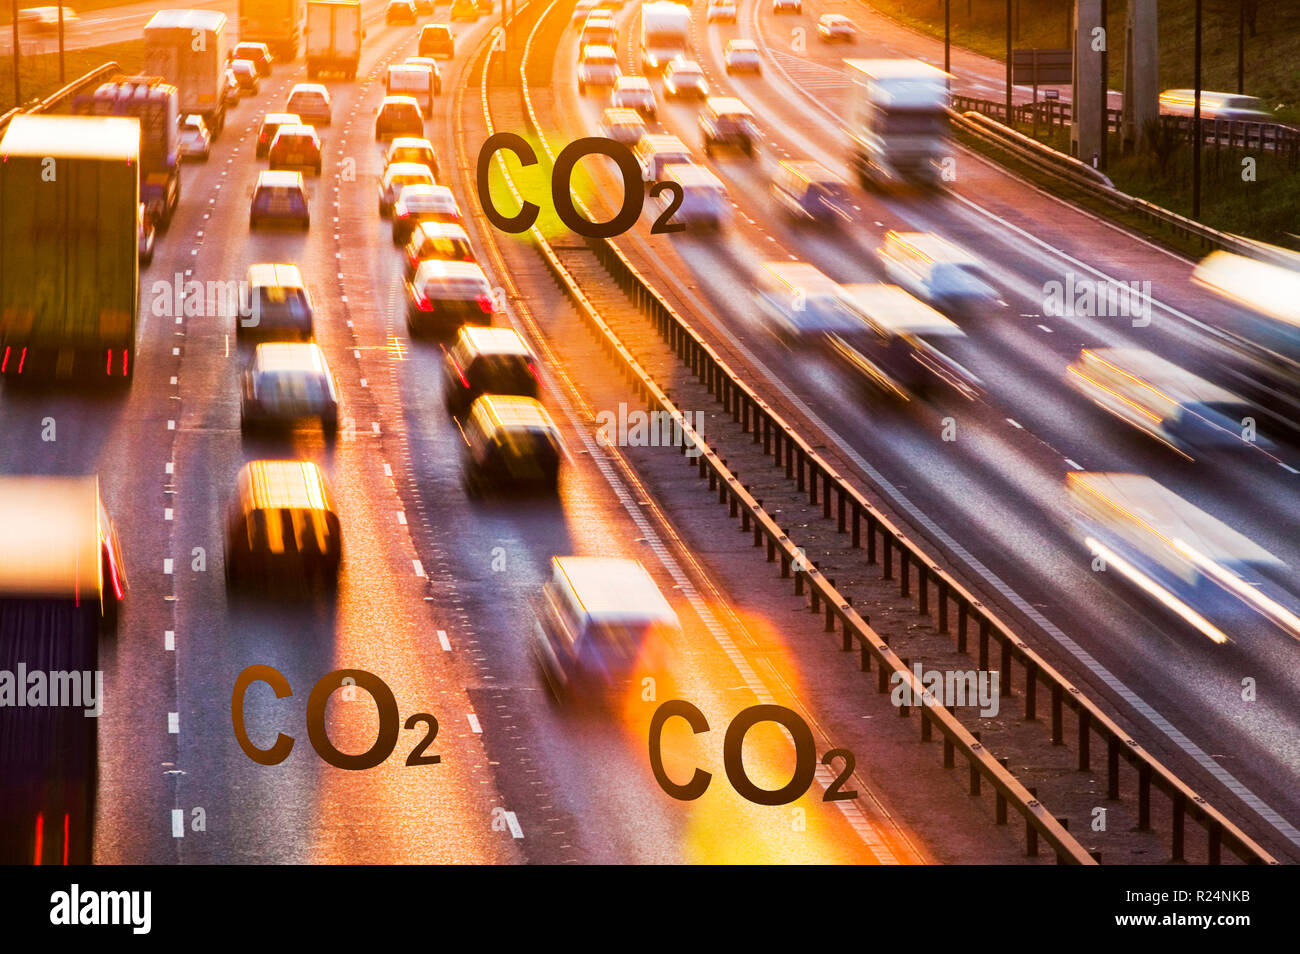 Rush hour traffic on the M60 motorway near Manchester at sunset, UK. Consumption of one gallon of petrol emits around 10.2 Kg of C02. - Stock Image